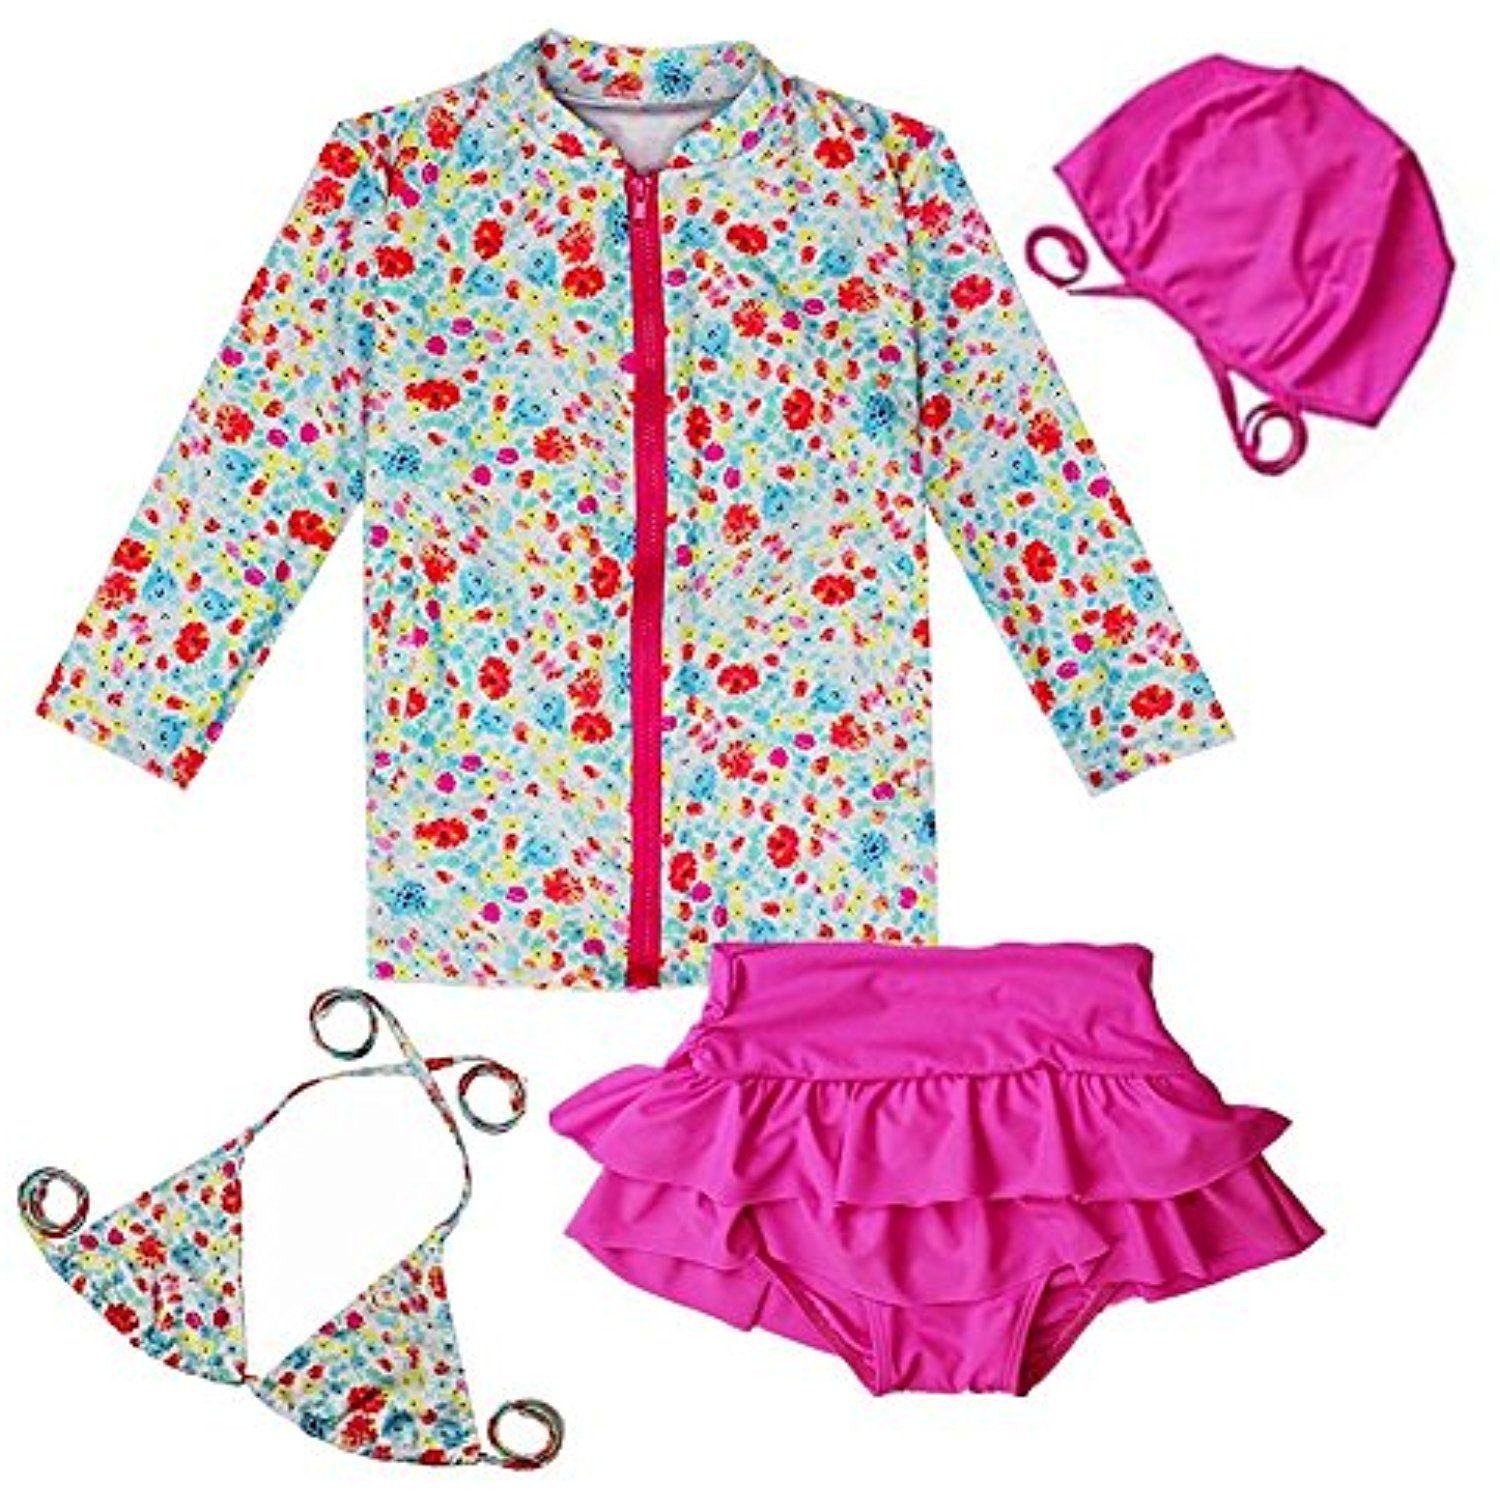 5c97a318e8 ZYZF Baby girls Floral long sleeve Rash Guard Top Two-piece bikini set UPF  50 UV Swimsuits Swimwear -- For more information, visit image link.